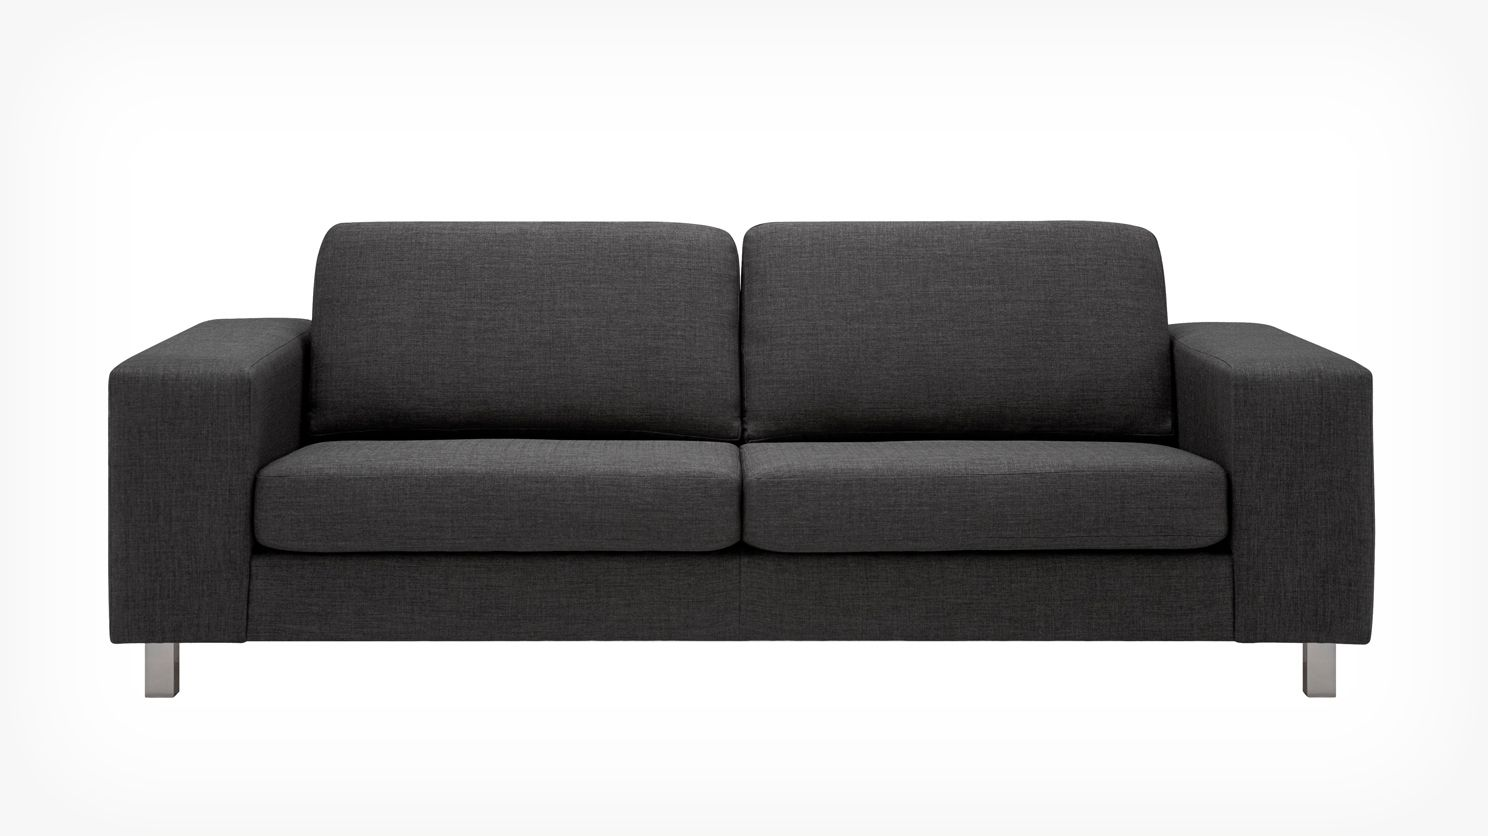 Hugo sofa fabric also comes in leather 2014 ideas pinterest hugo sofa fabric also comes in leather parisarafo Image collections